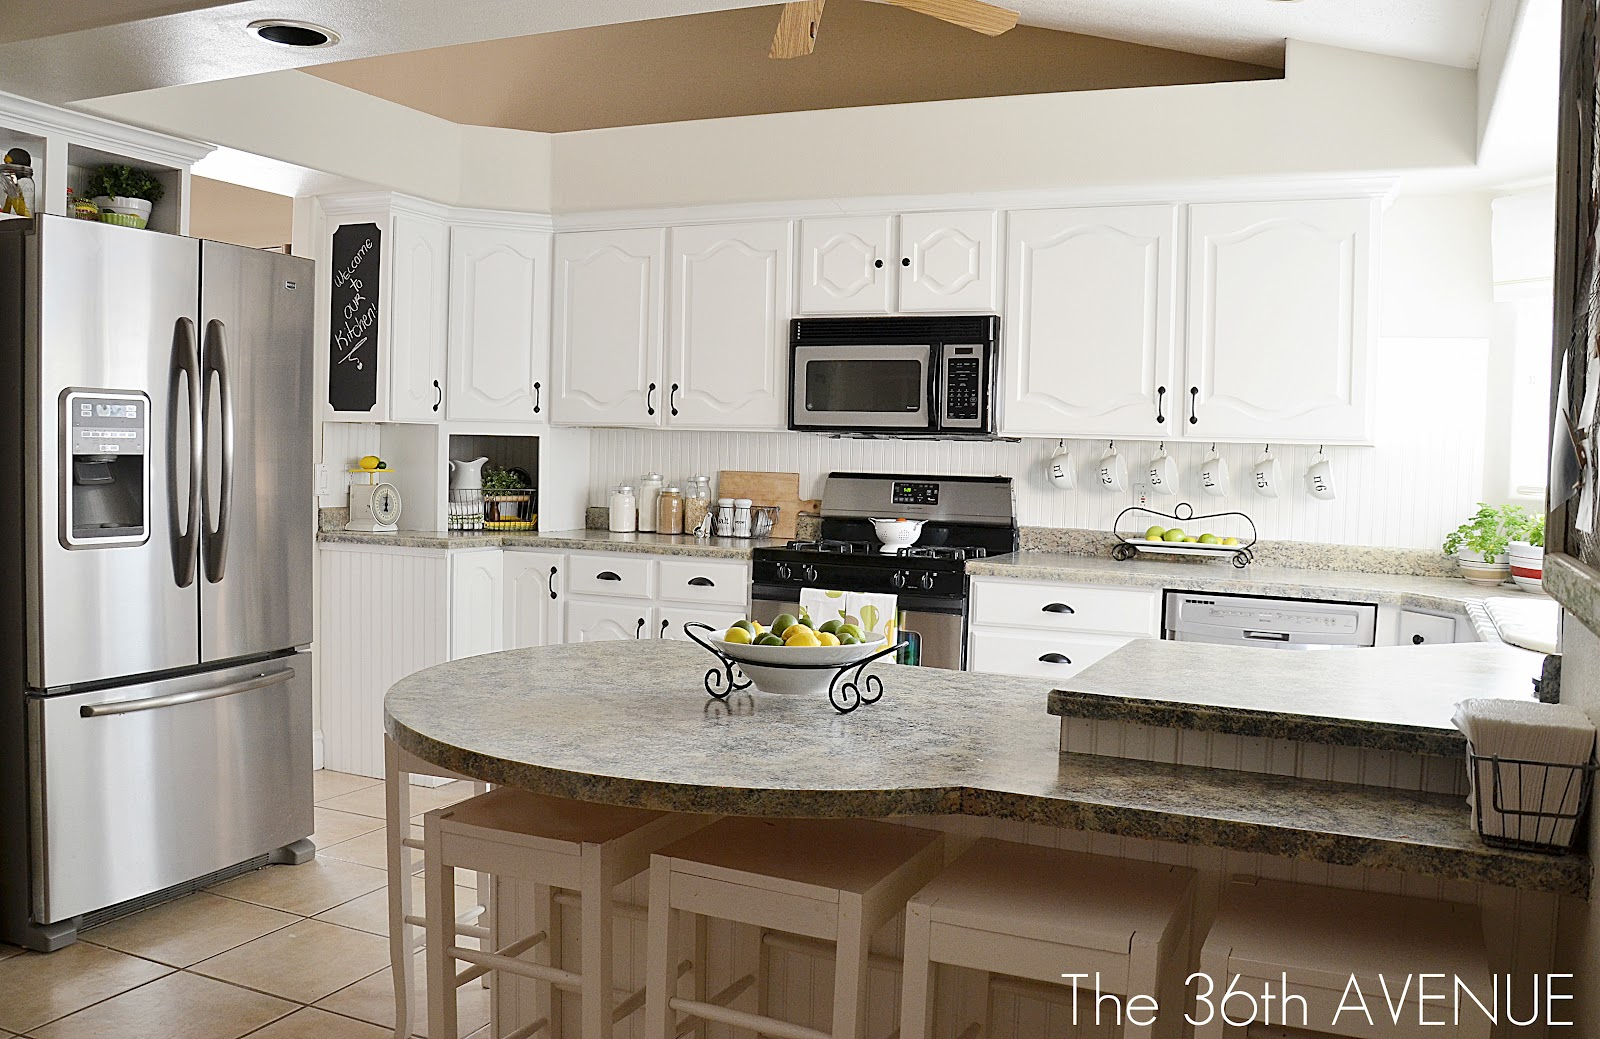 Our White Kitchen Reveal - The 36th AVENUE